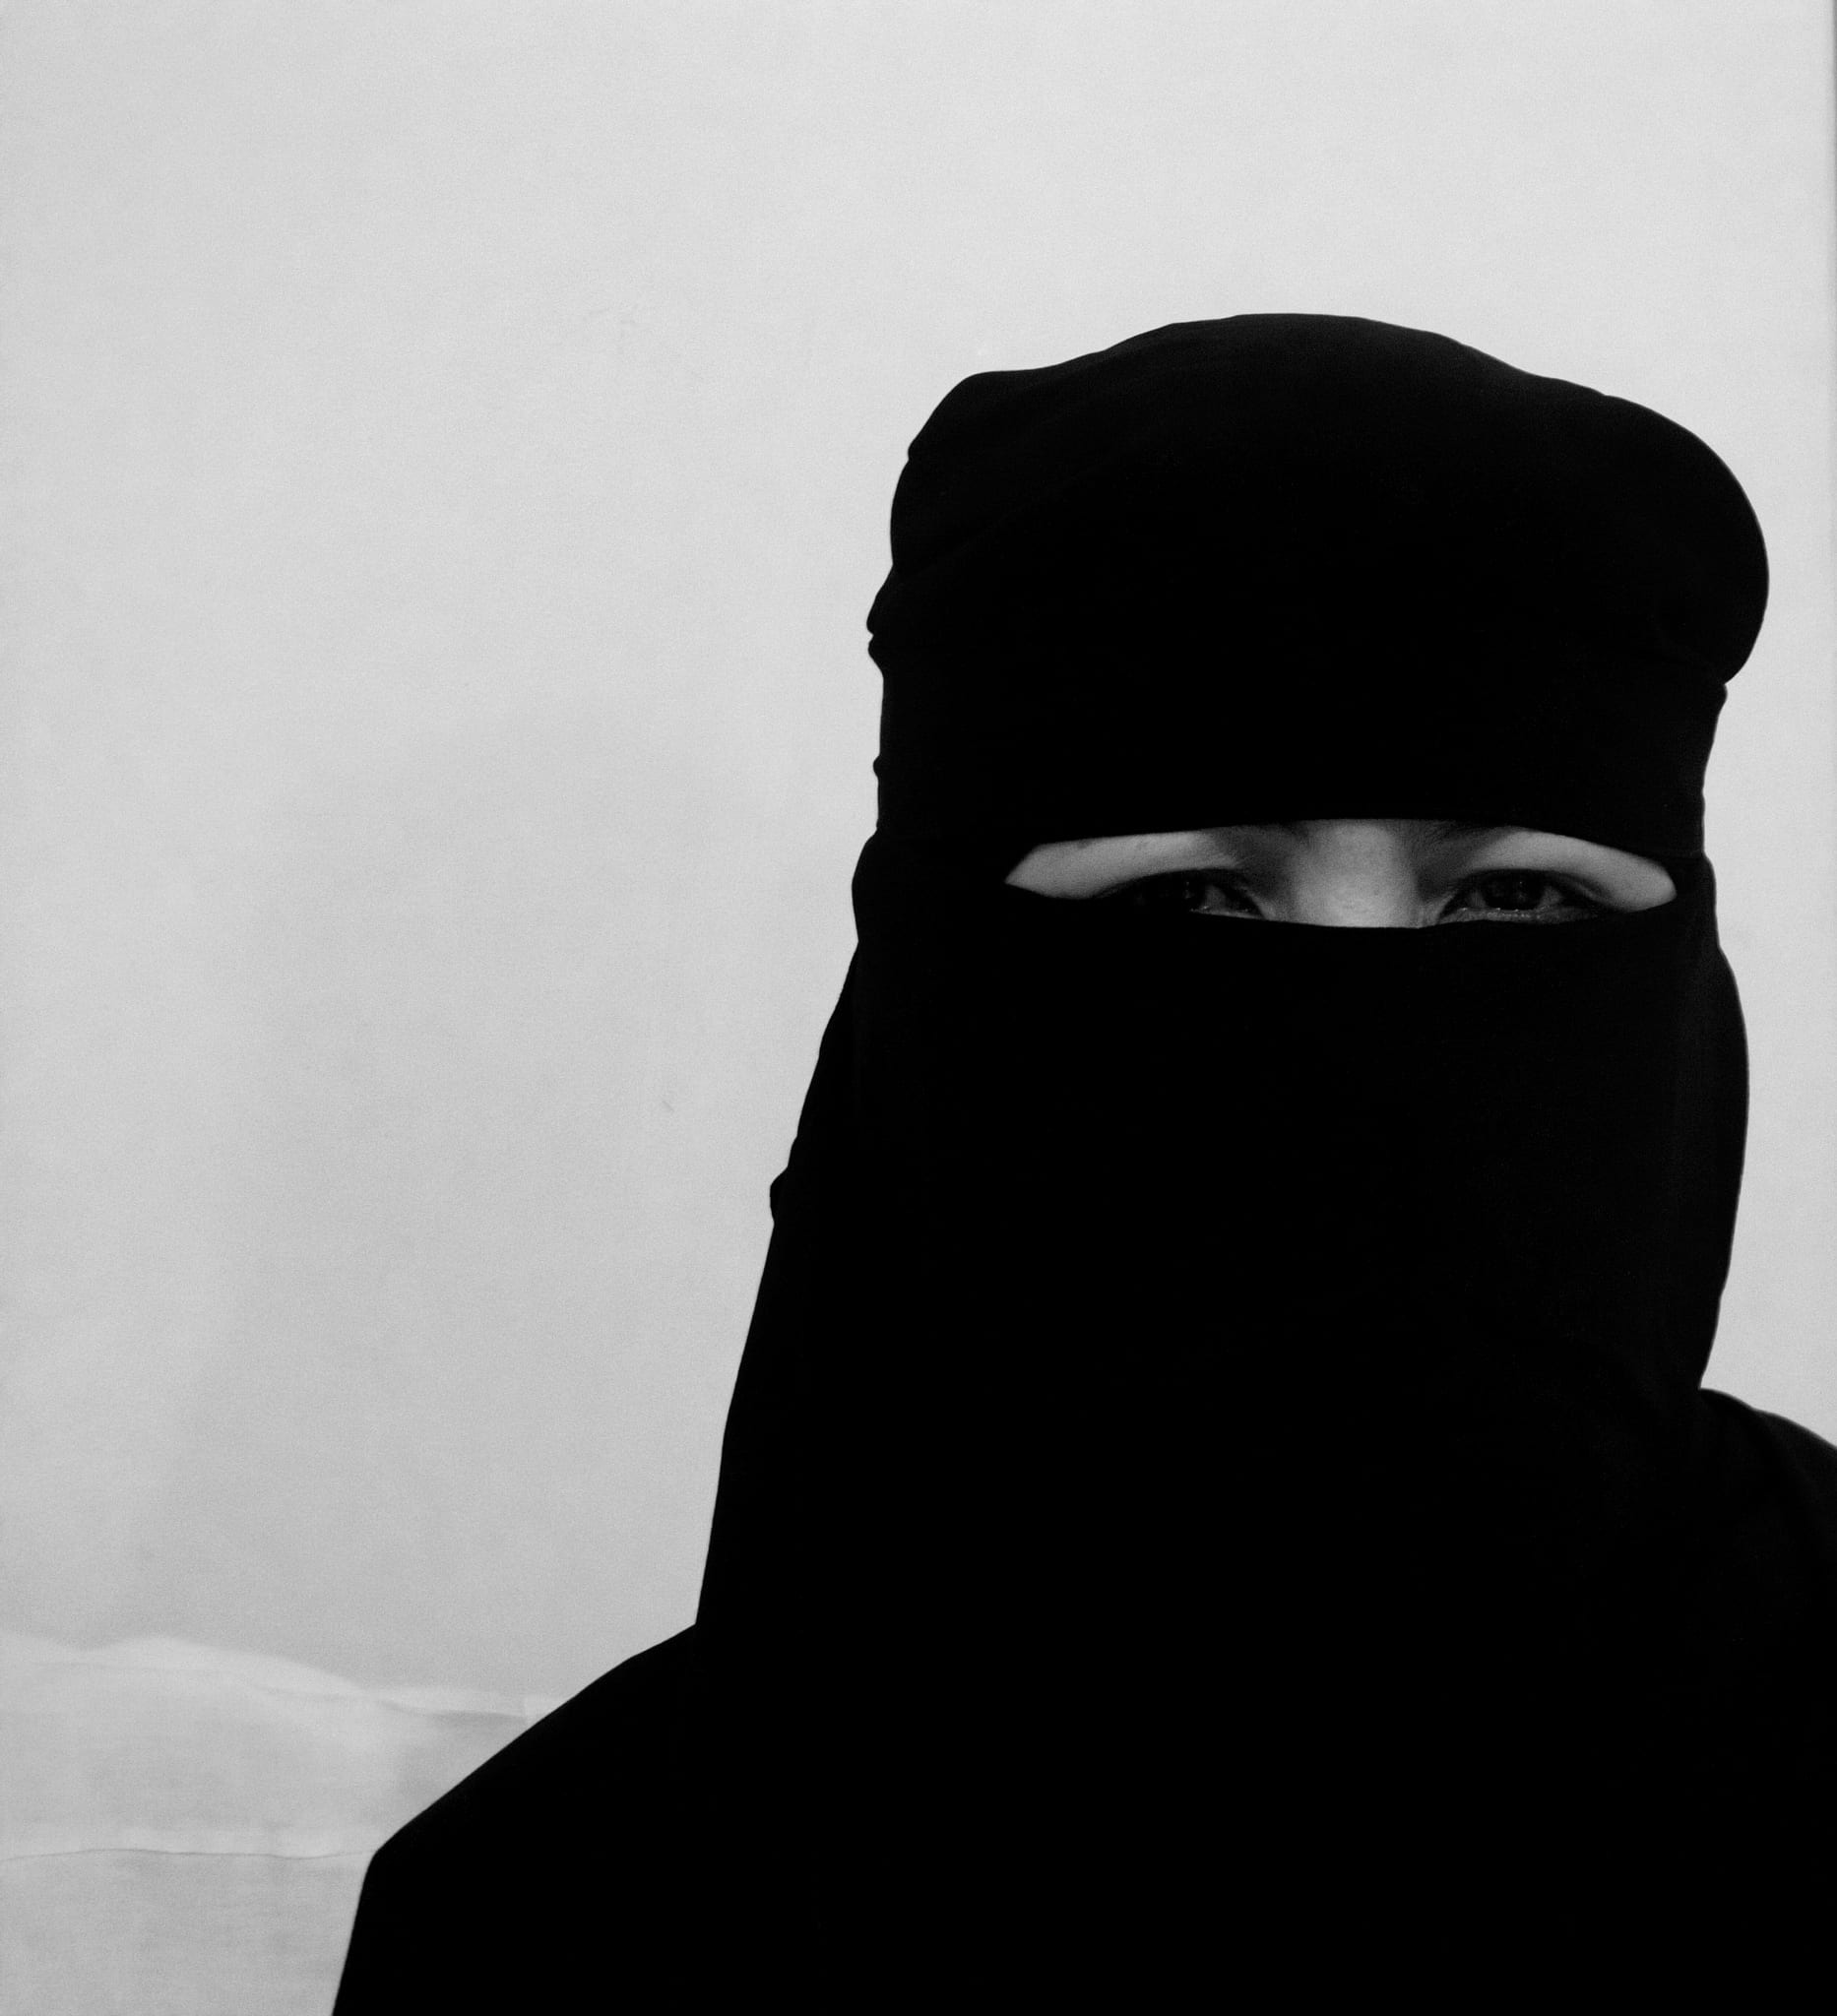 a picture of a Saudi woman